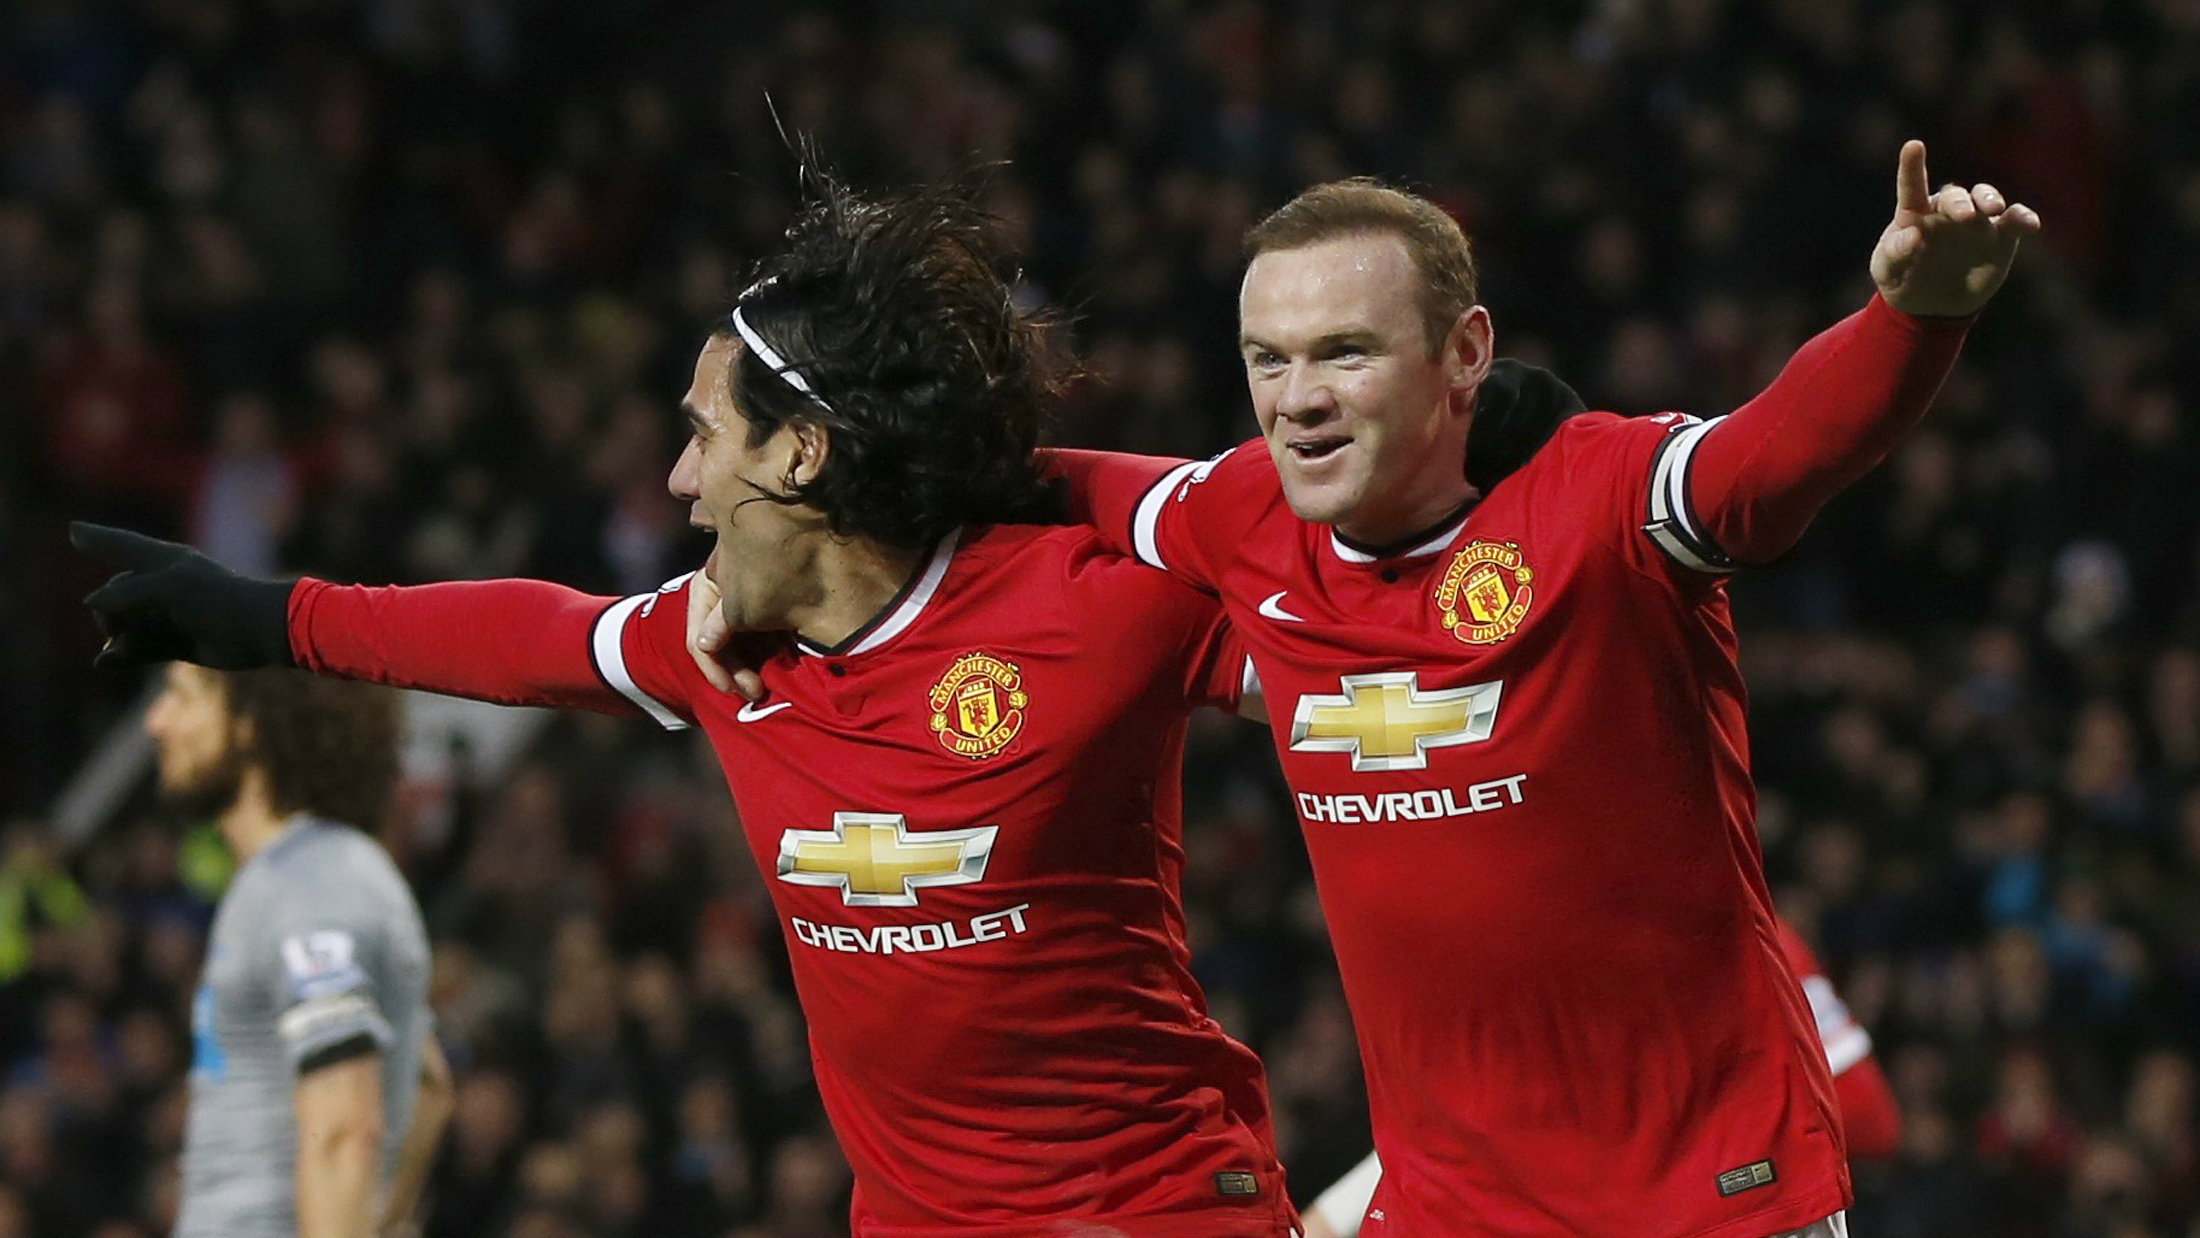 Manchester United's Wayne Rooney (R) celebrates after scoring a goal against Newcastle with team-mate Radamel Falcao during their English Premier League soccer match at Old Trafford in Manchester.